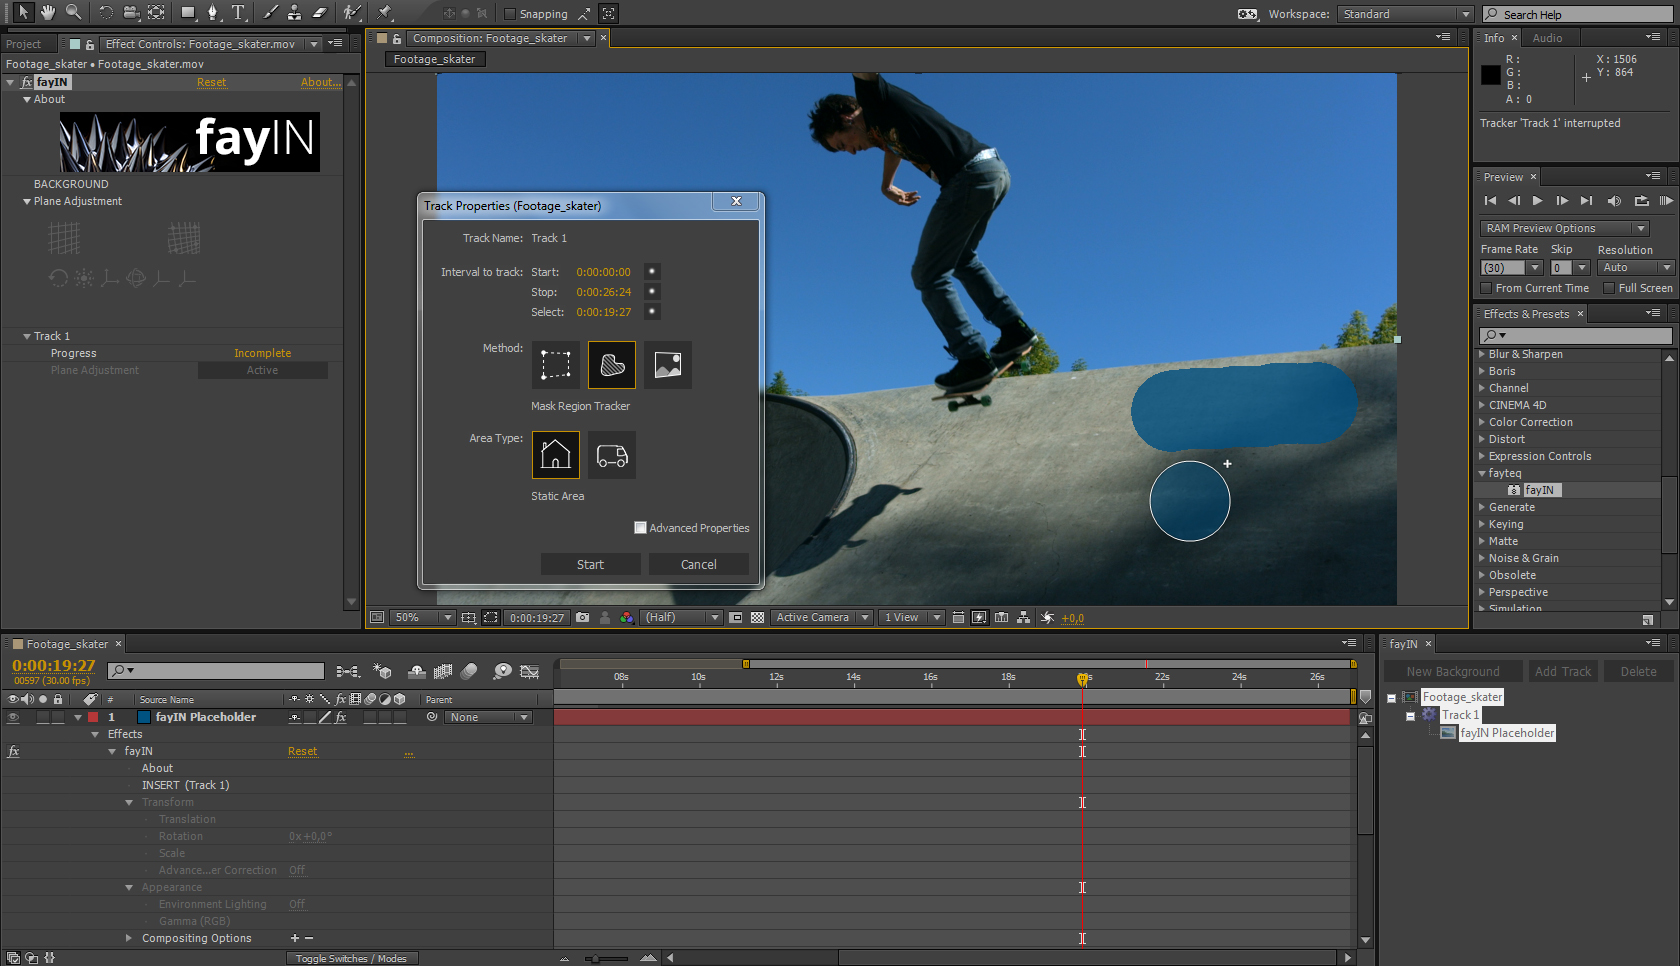 A brand new Adobe After Effects plugin for highly efficient